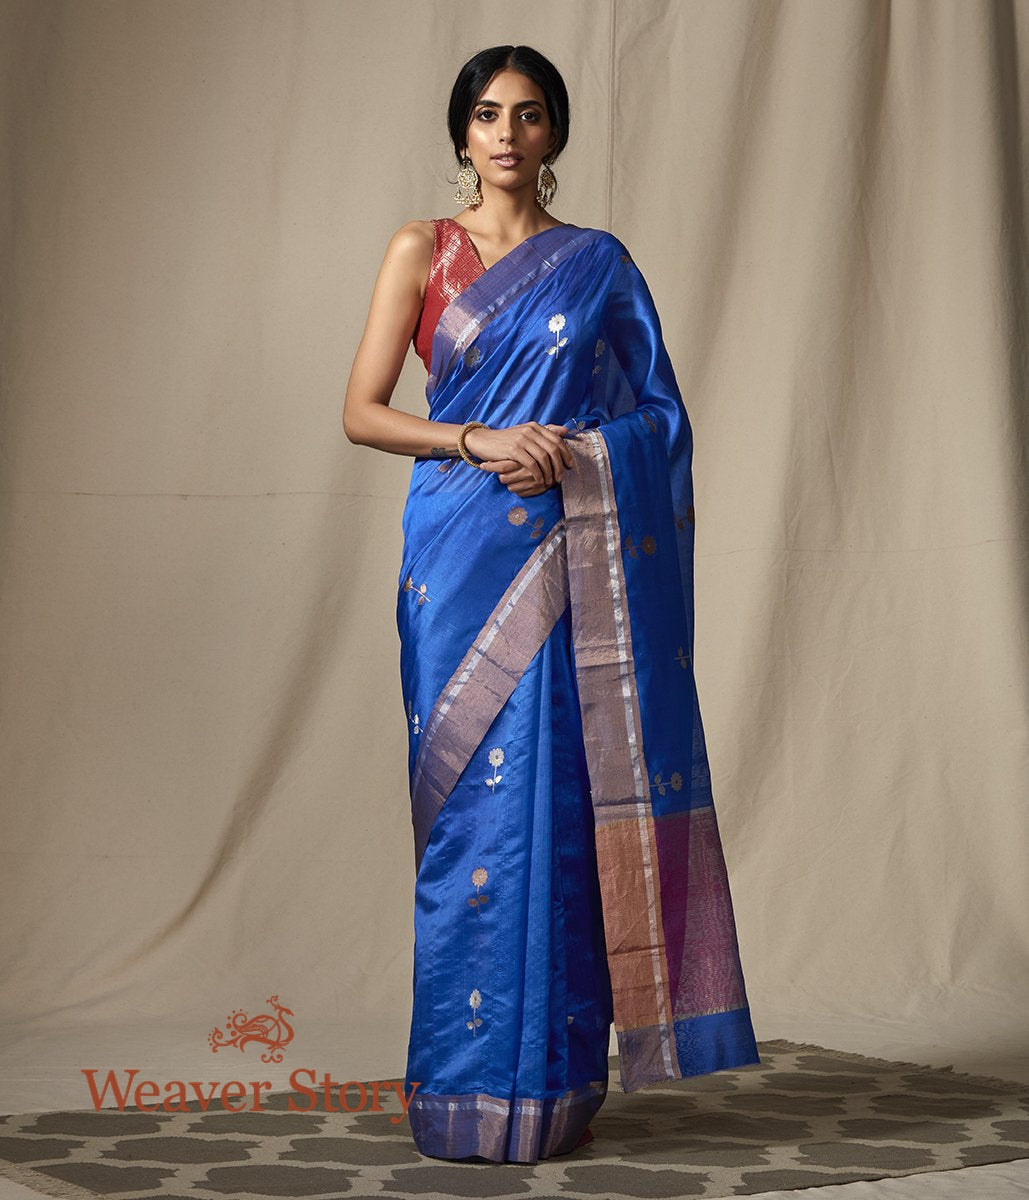 Handwoven Blue Chanderi Silk Saree with Gold Flower Motifs